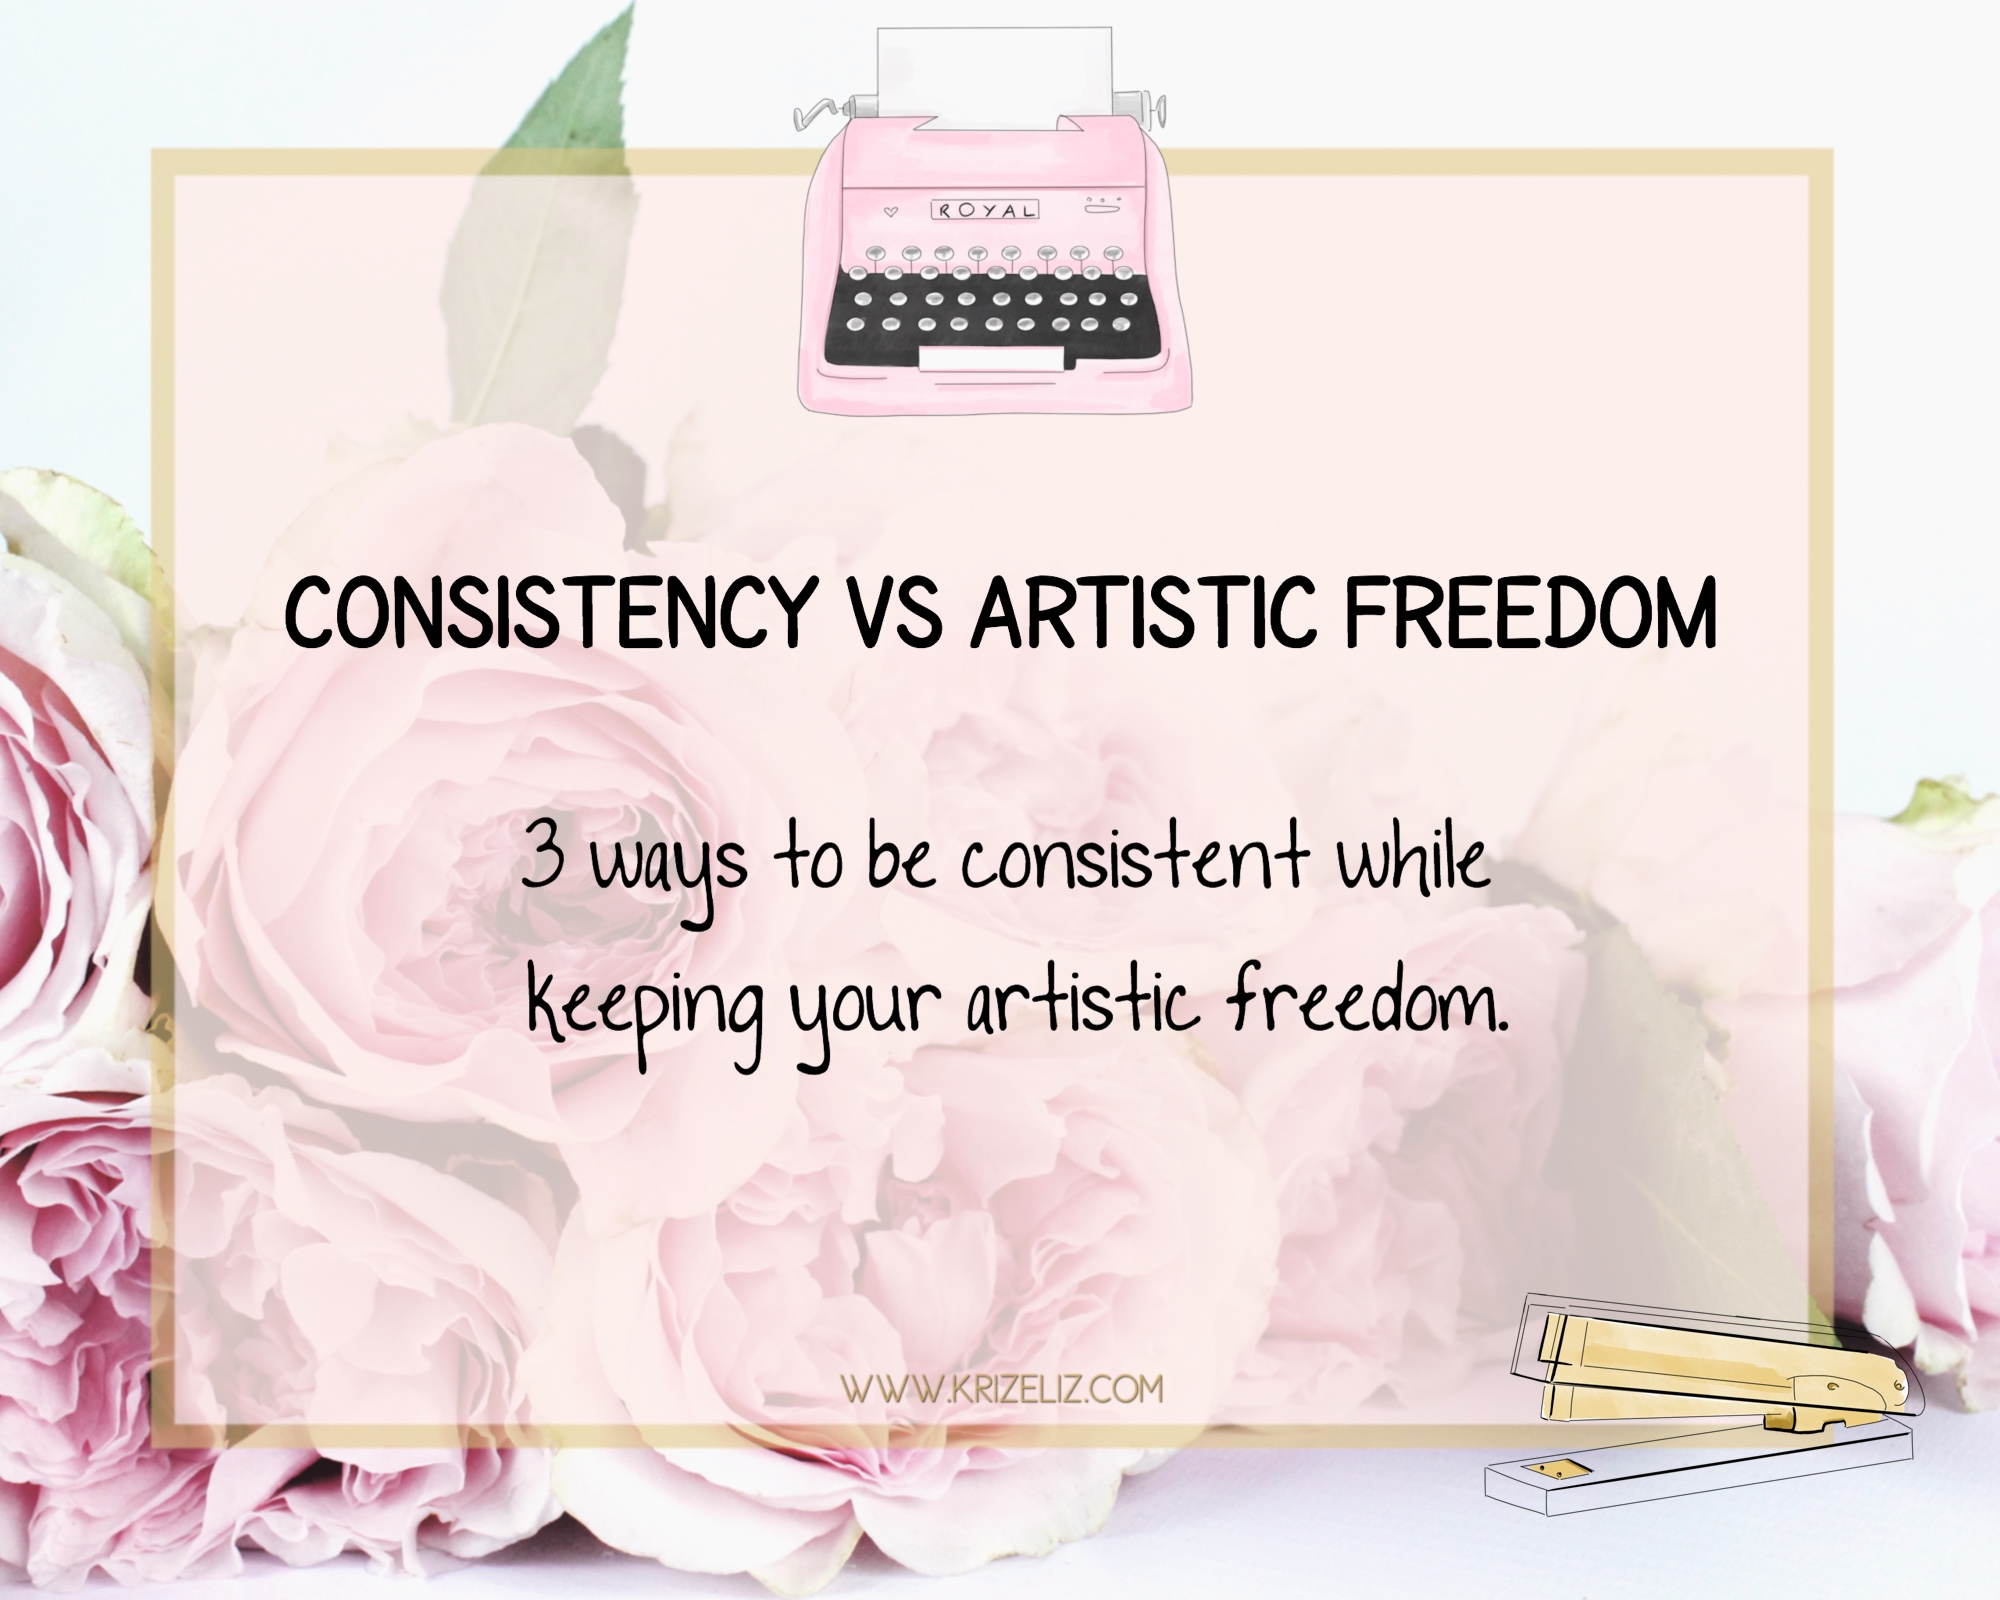 Consistency Vs Artistic Freedom: 3 Ways To Be Consistent While Keeping your Artistic Freedom